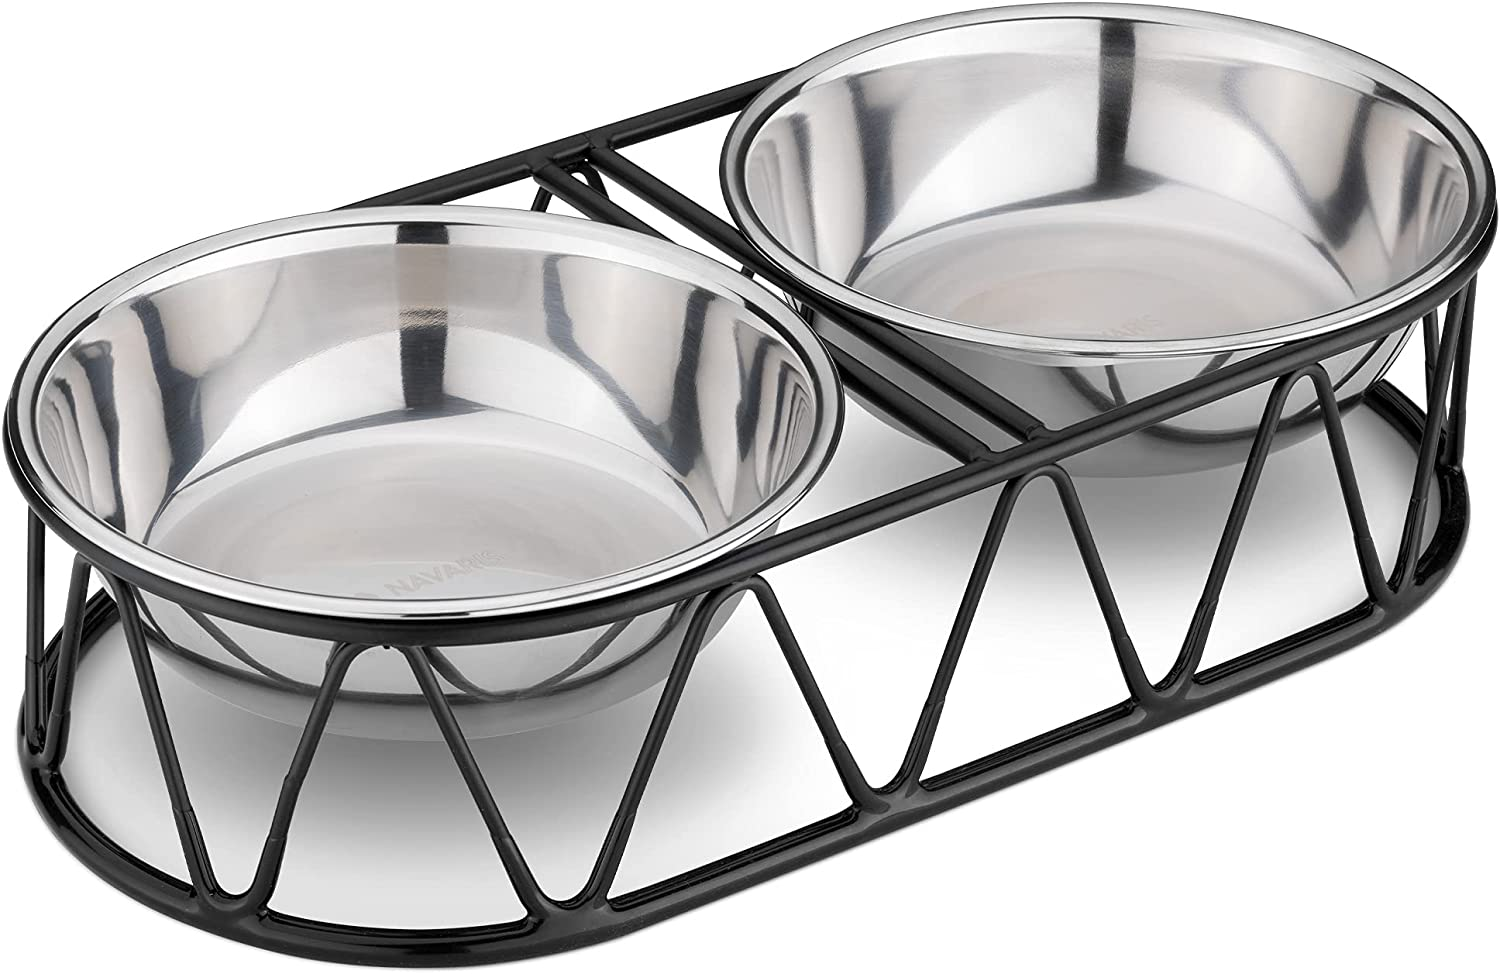 Navaris Stainless Steel Dog Bowls - Cat Food Bowls with Stand - Elevated Double Bowl and Holder for Cats & Small Dogs Raised Metal Wire Stand - Black